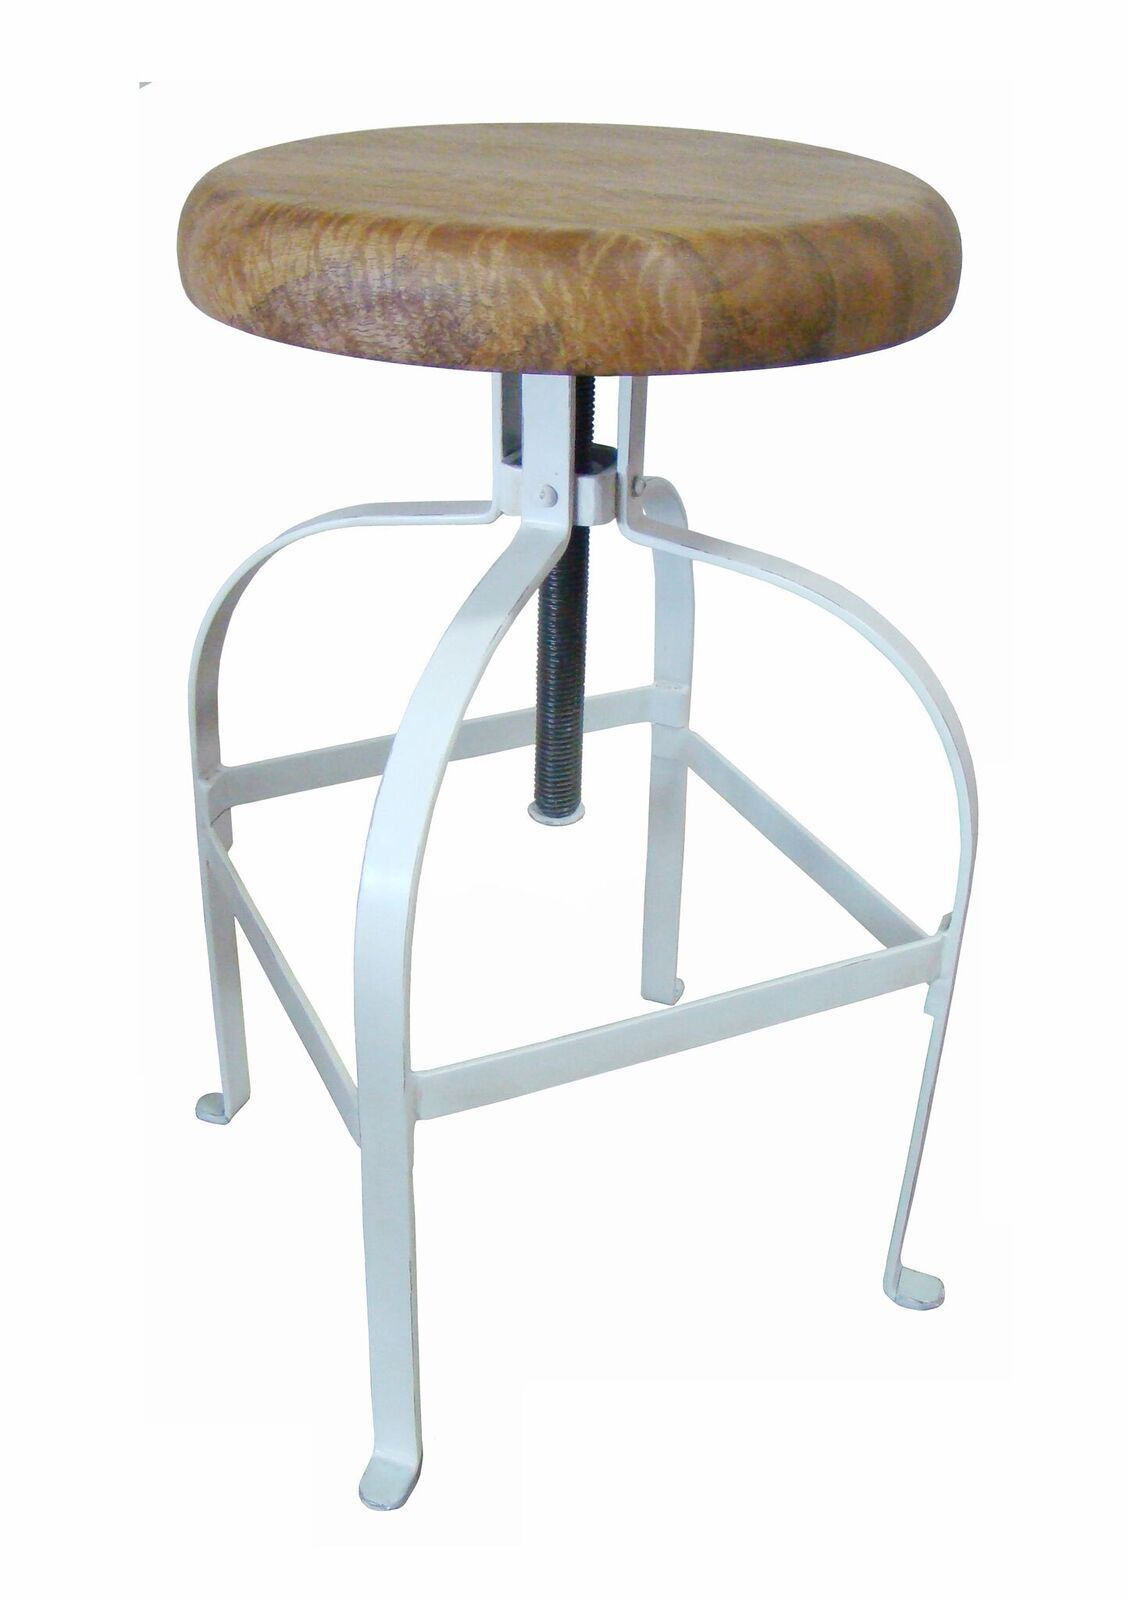 Mango Timber Top Industrial Bar Stool-White - decorstore